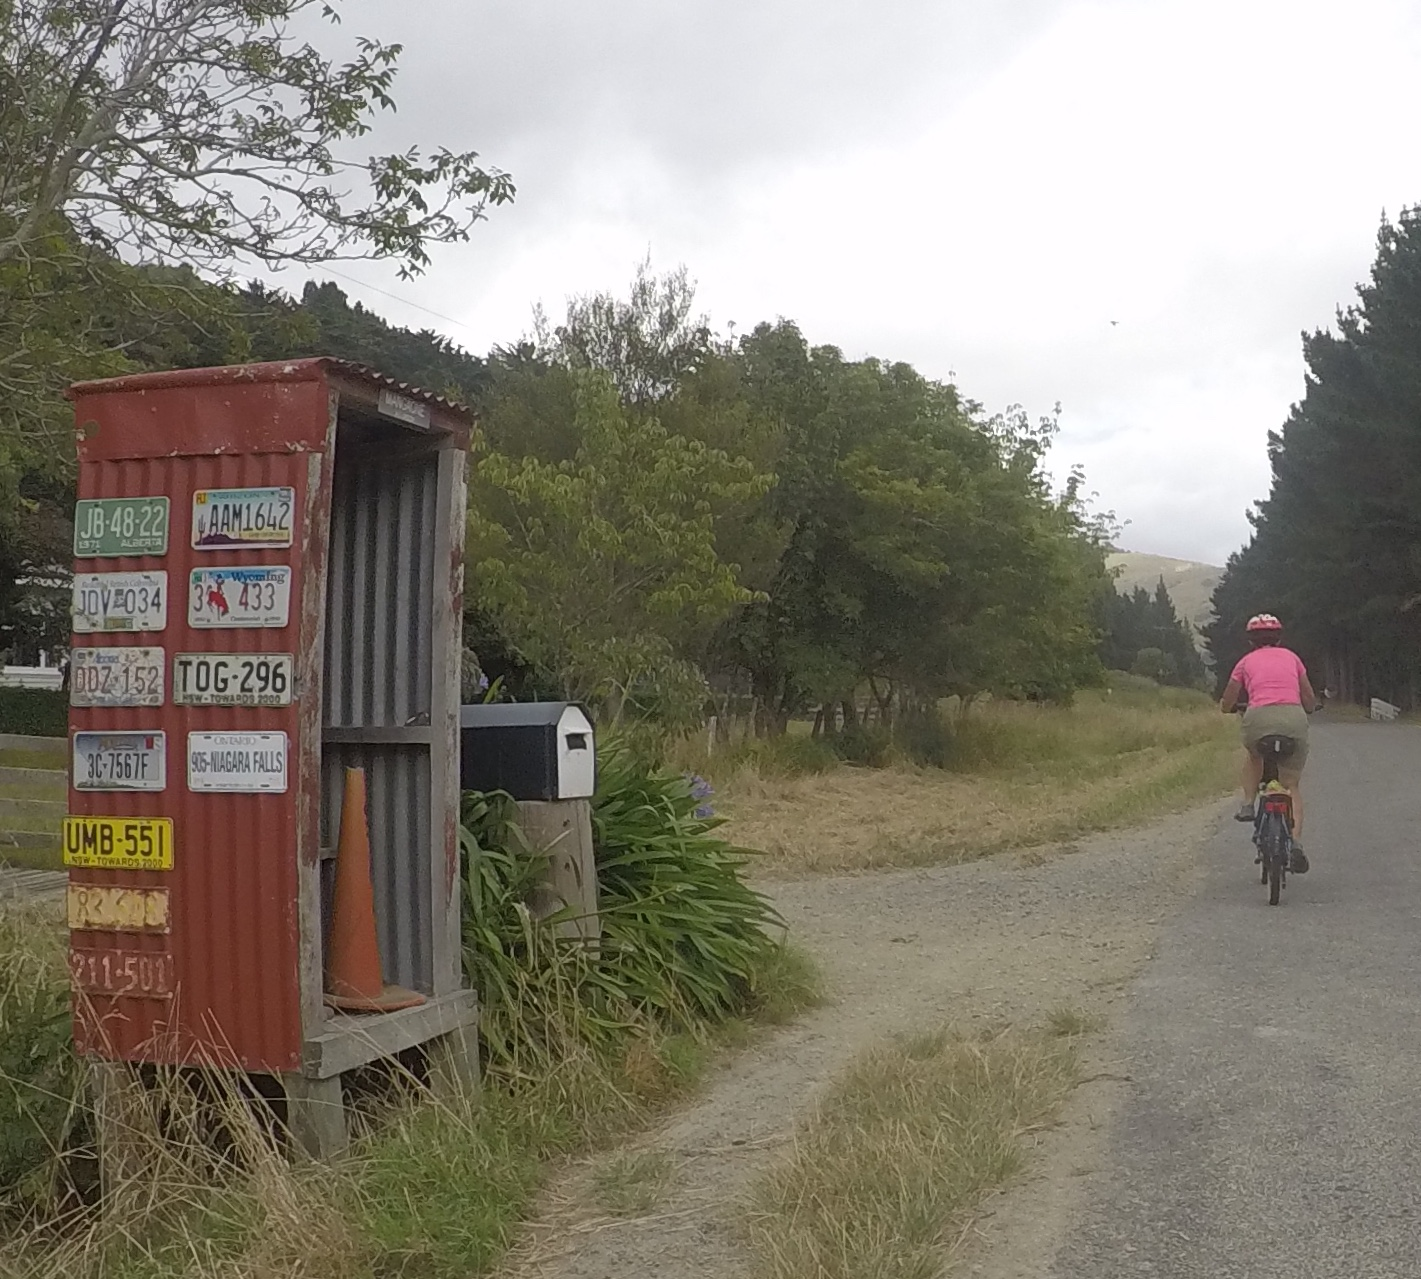 The GoPro finally got some use – Cycling Route 52